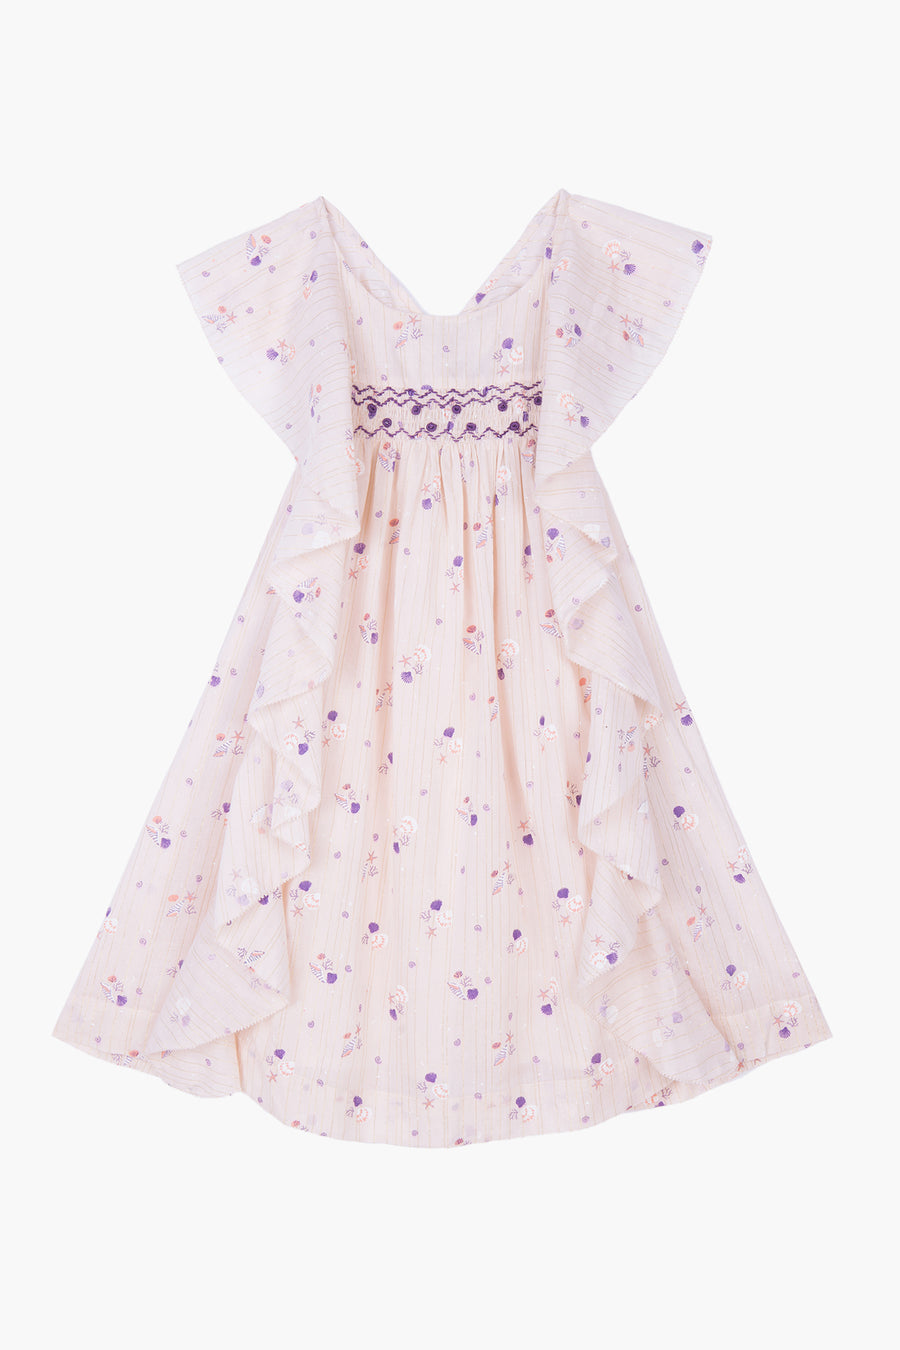 Velveteen Amber Seashell Girls Dress